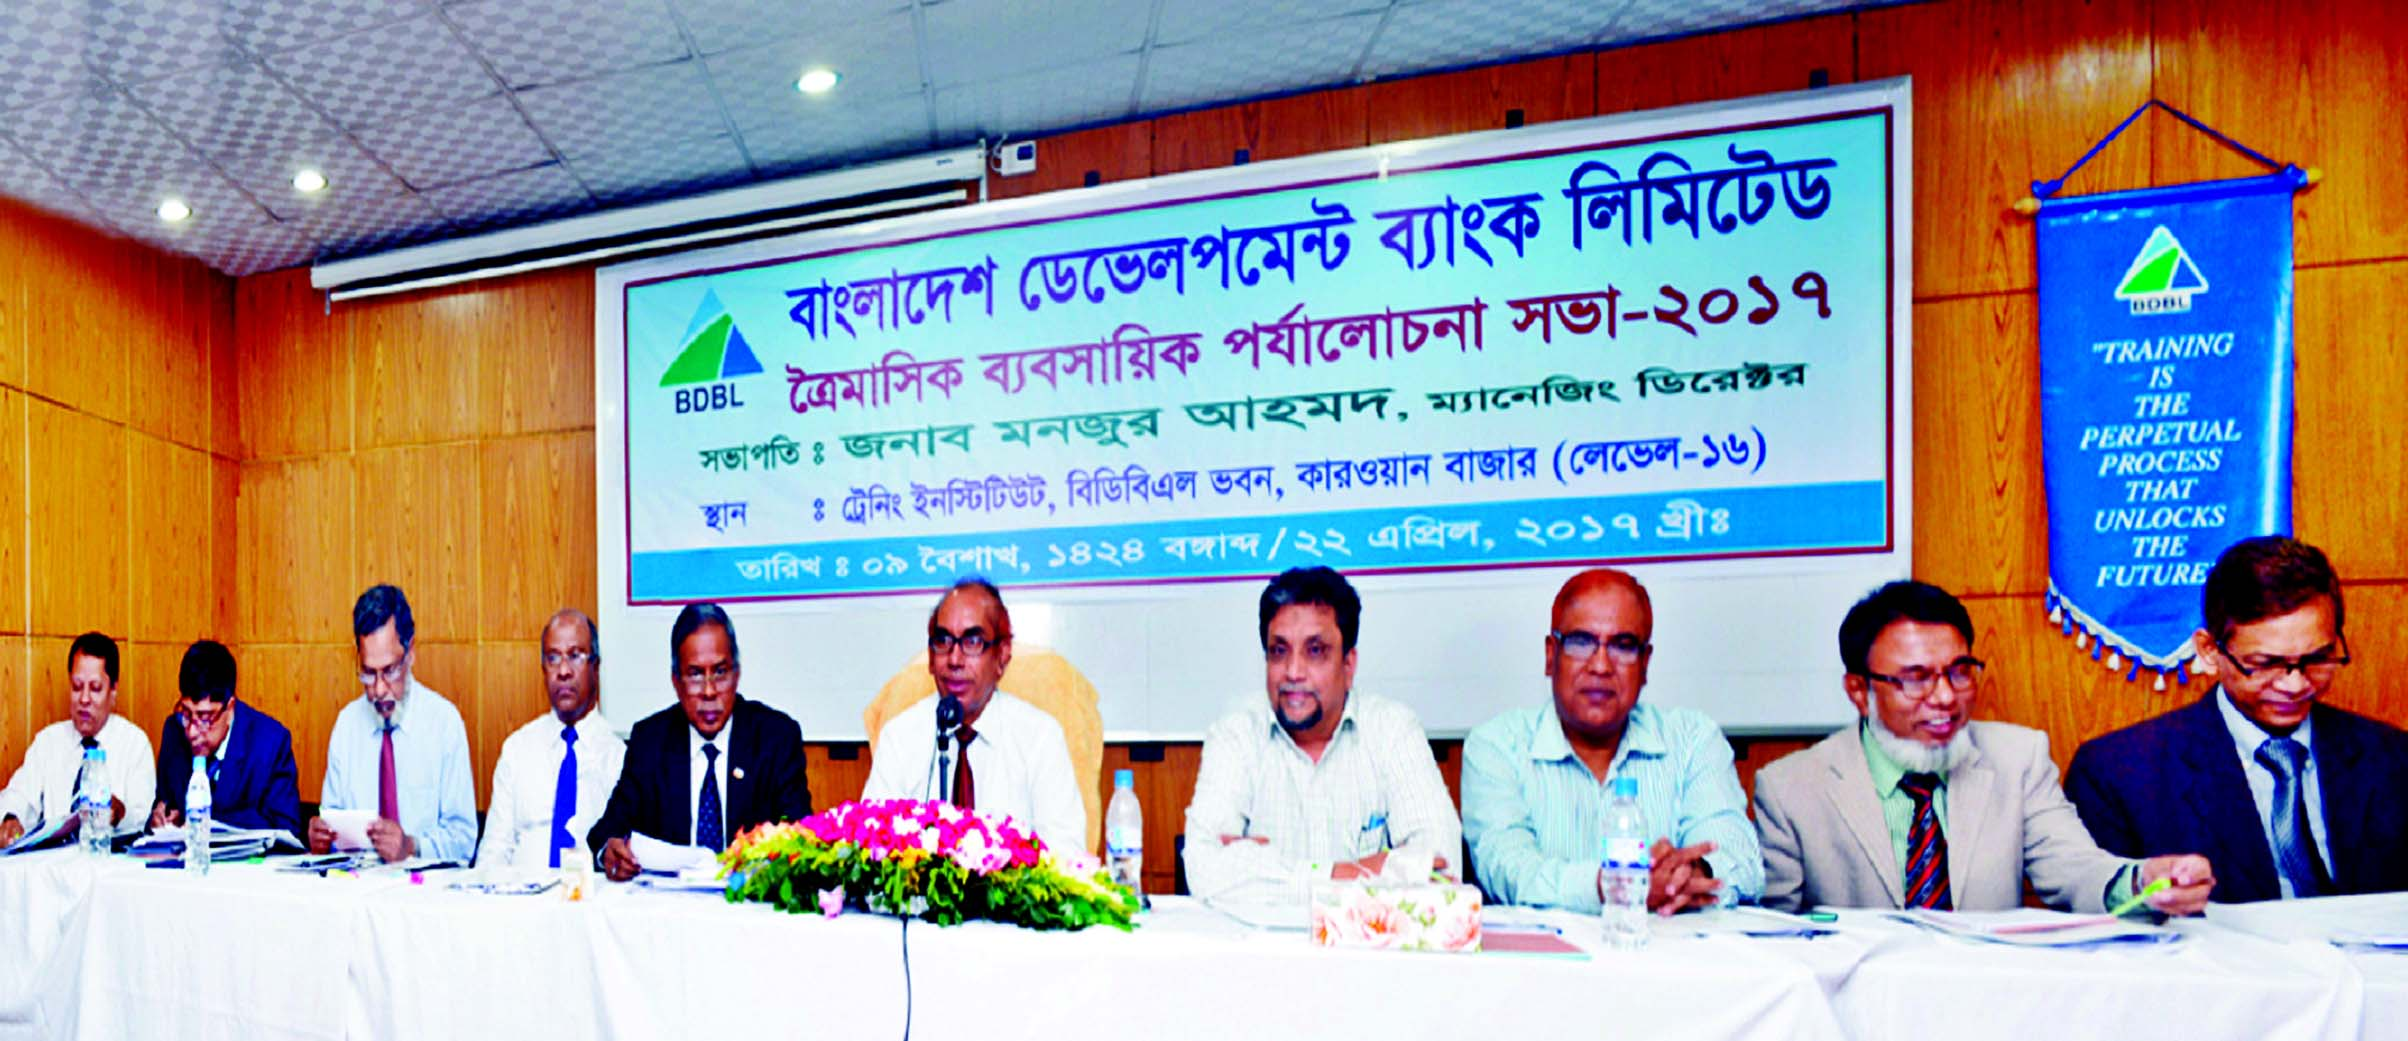 Manjur Ahmed, Managing Director of Bangladesh Development Bank Limited, presiding over its Quarterly Business Review Meeting-2017 at the bank's training institute in the city on Saturday. All General Managers, Branch Managers and concerned officials of the bank were also present.